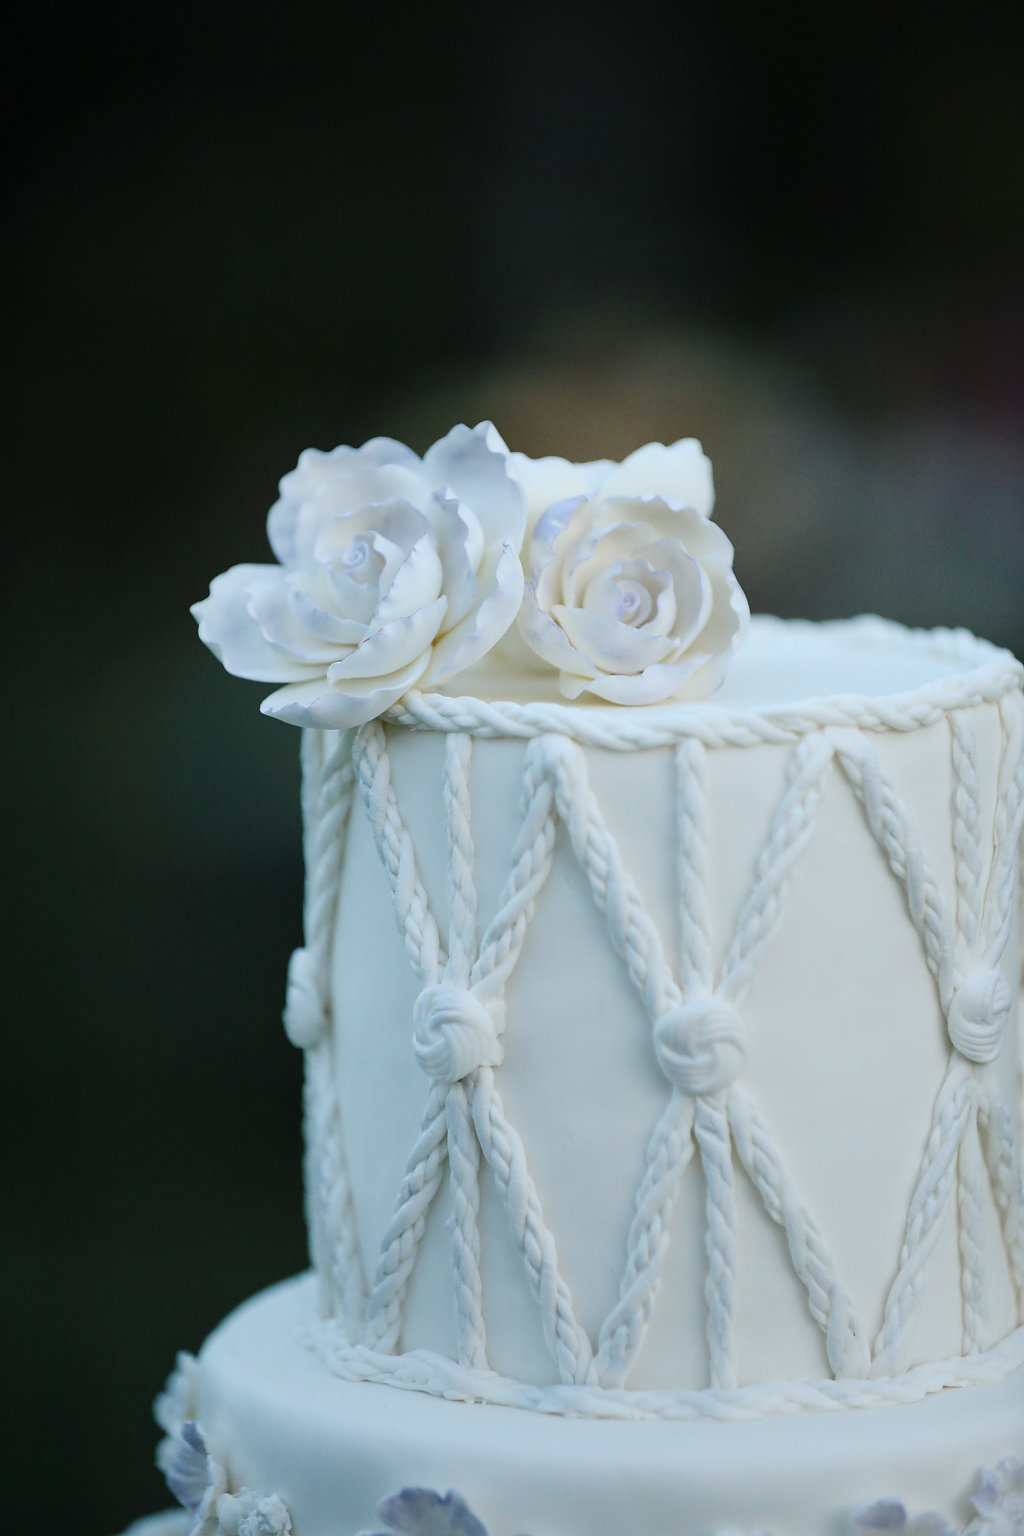 Close up details of the macrame wedding cake with gum paste flowers.